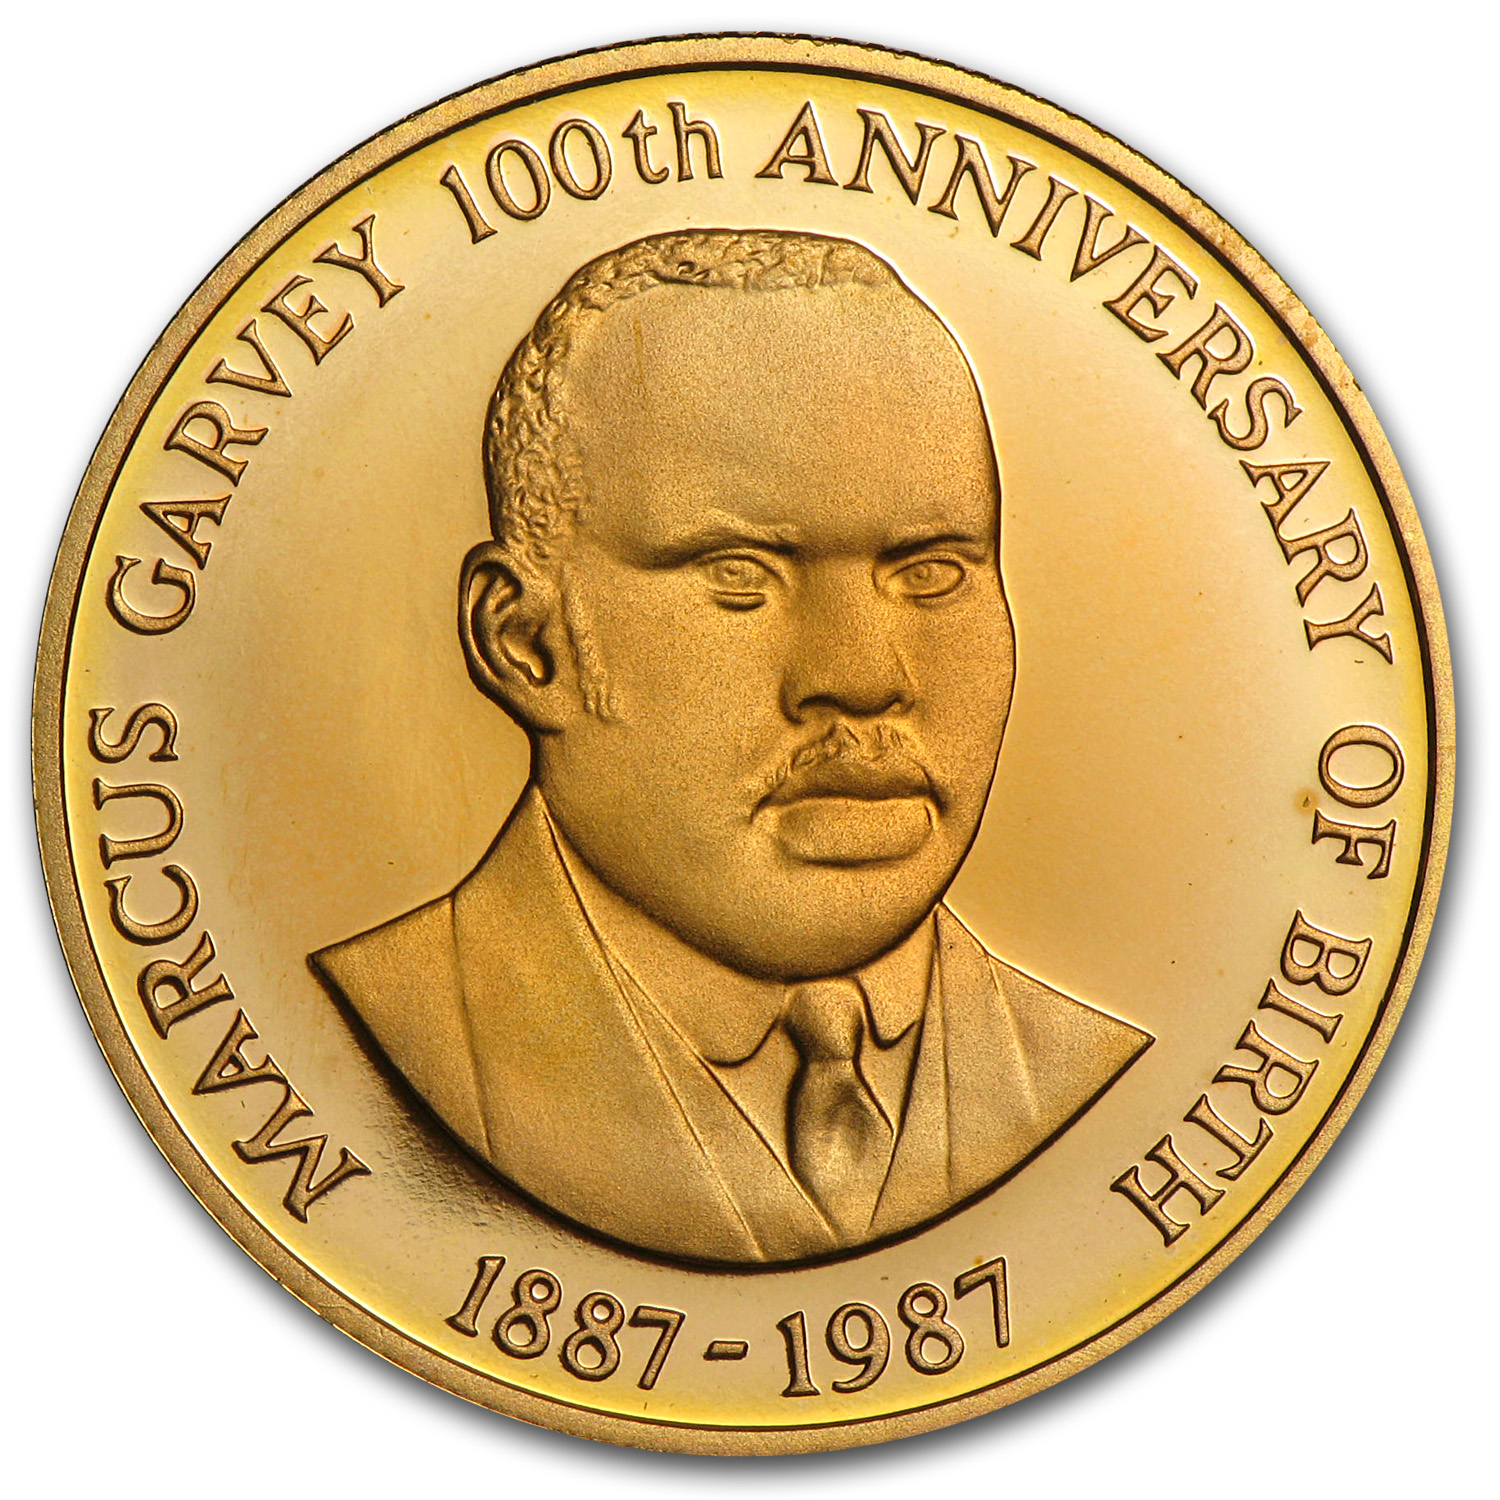 1987 Jamaica Proof Gold 100 Dollars Marcus Garvey